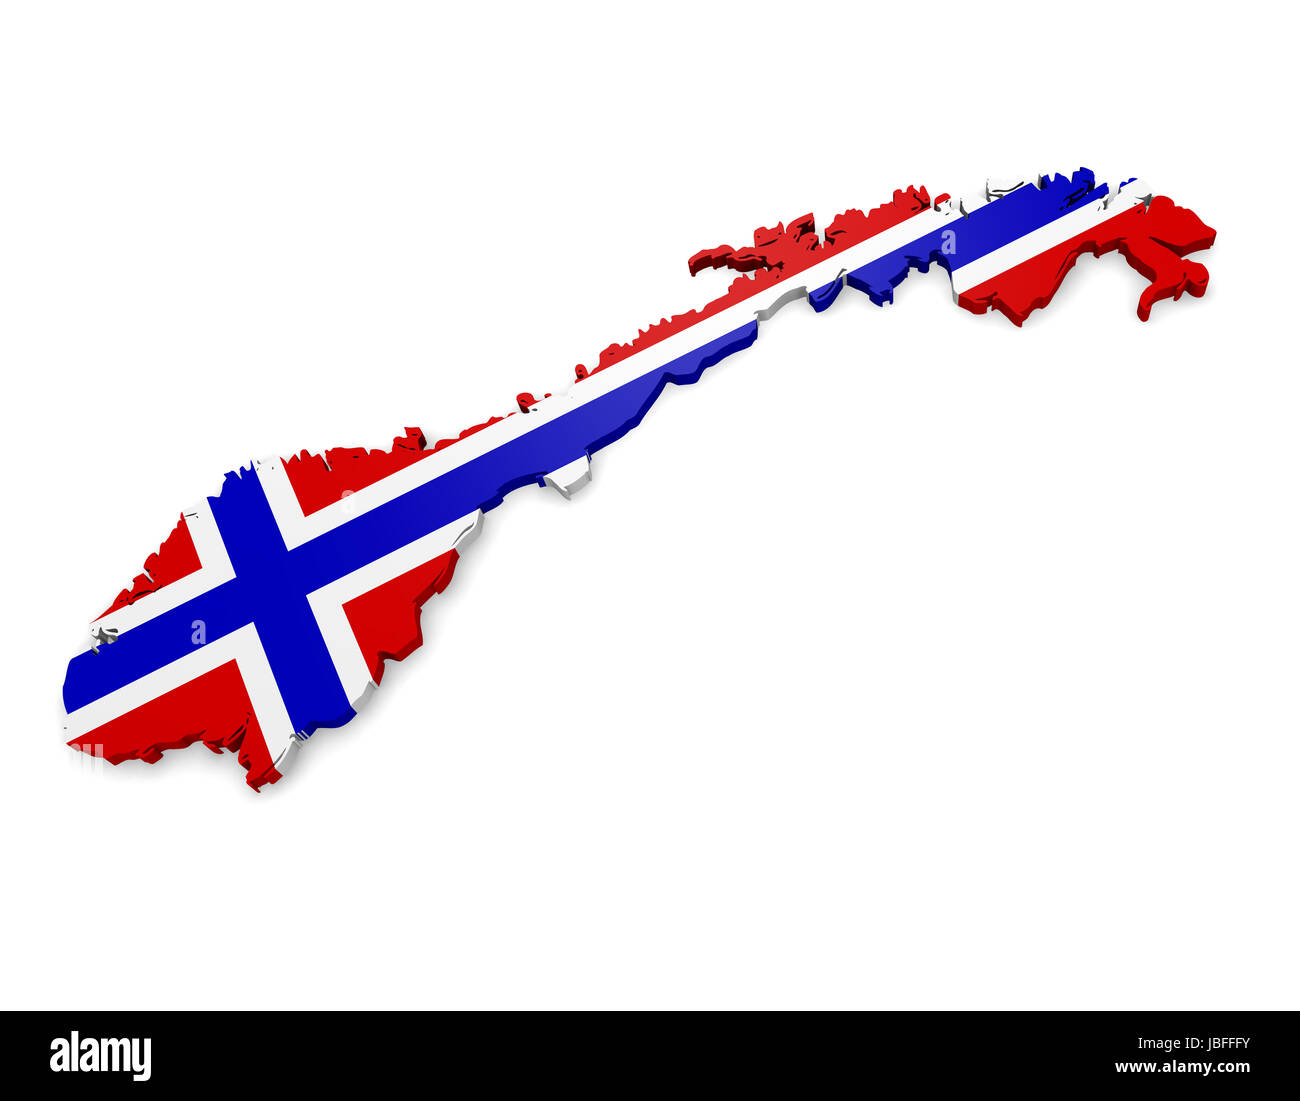 D Norway Map With Flag Illustration On White Background Stock - Norway map and flag